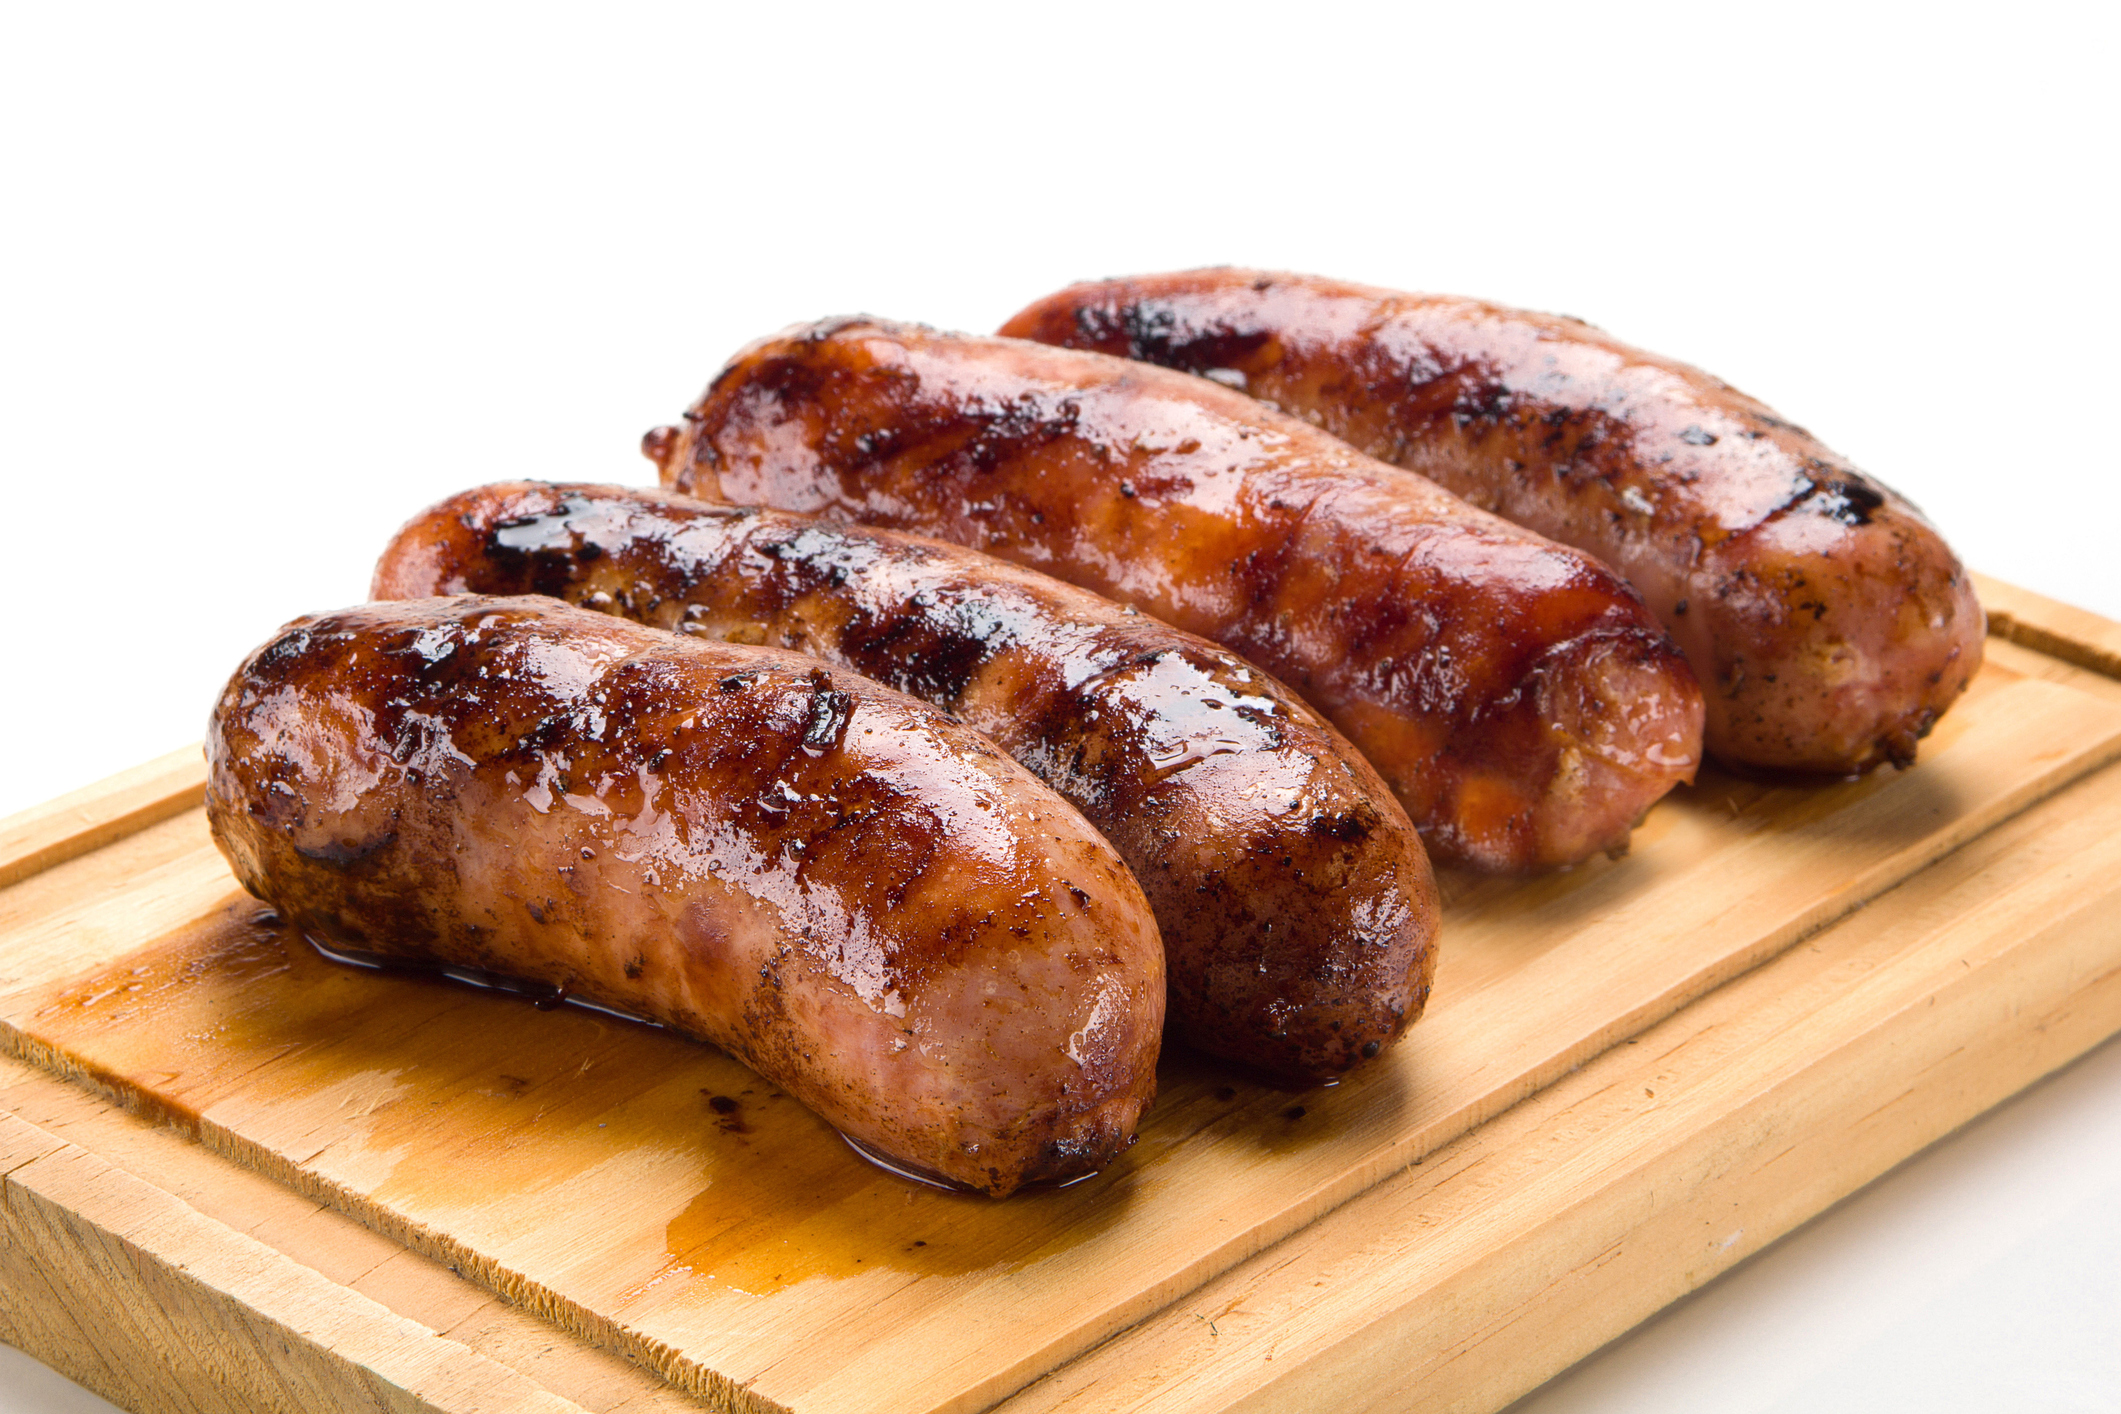 How many calories are there in sausages